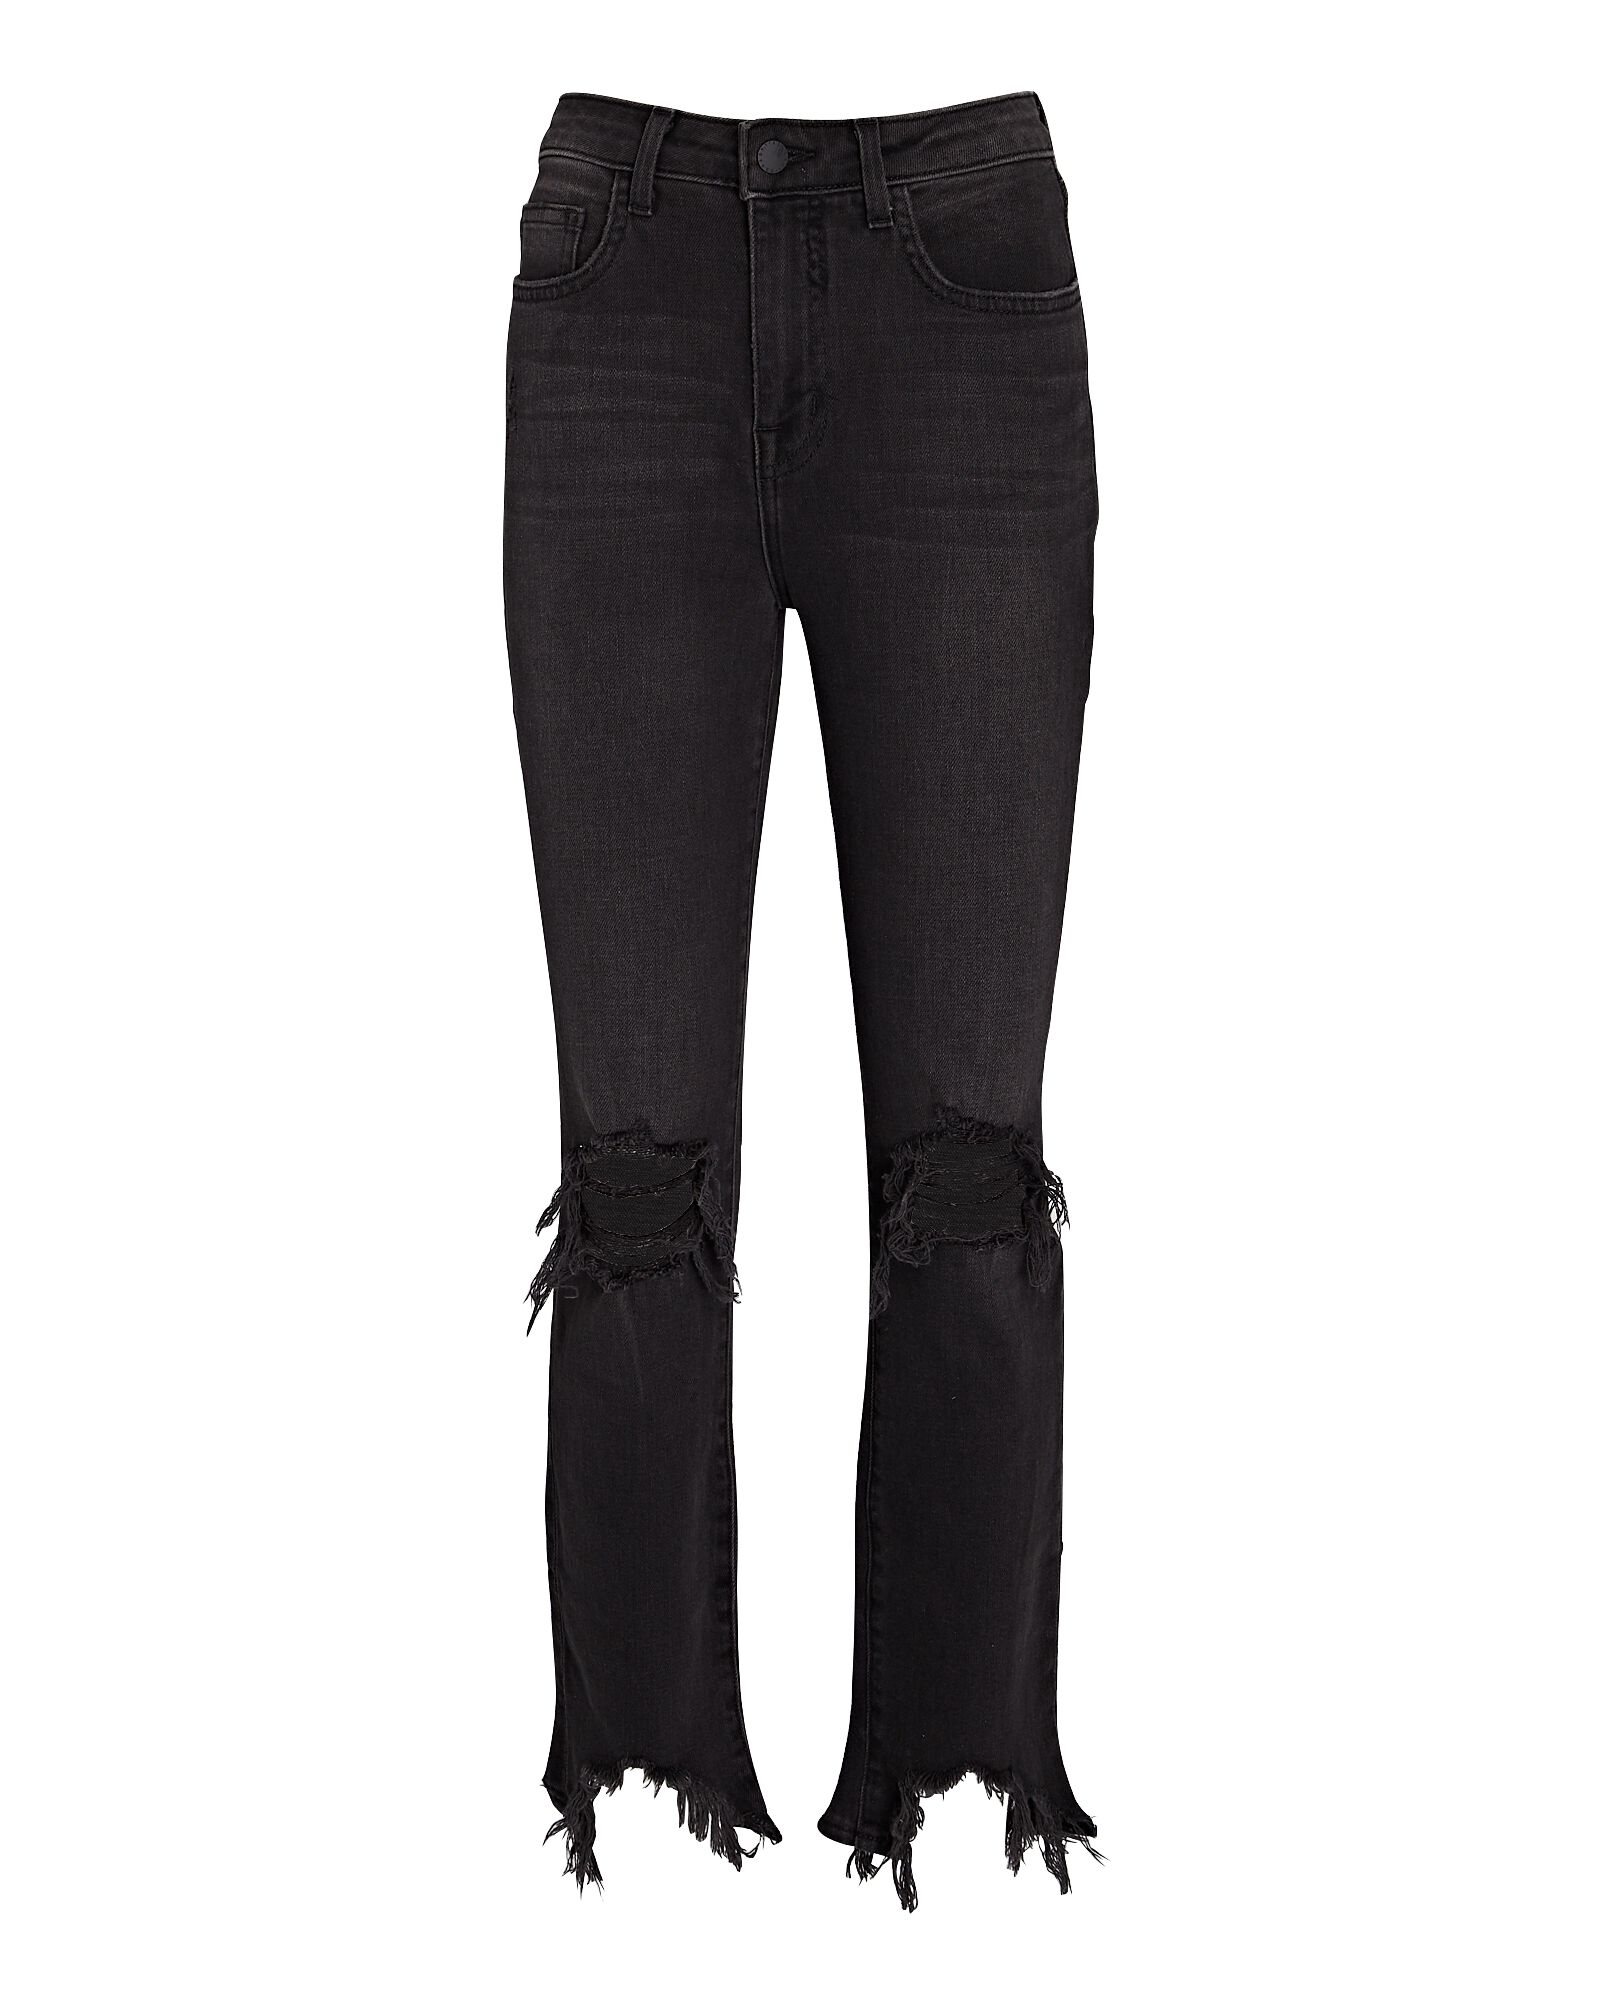 High Line Distressed Skinny Jeans, NIGHT DESTROYED, hi-res